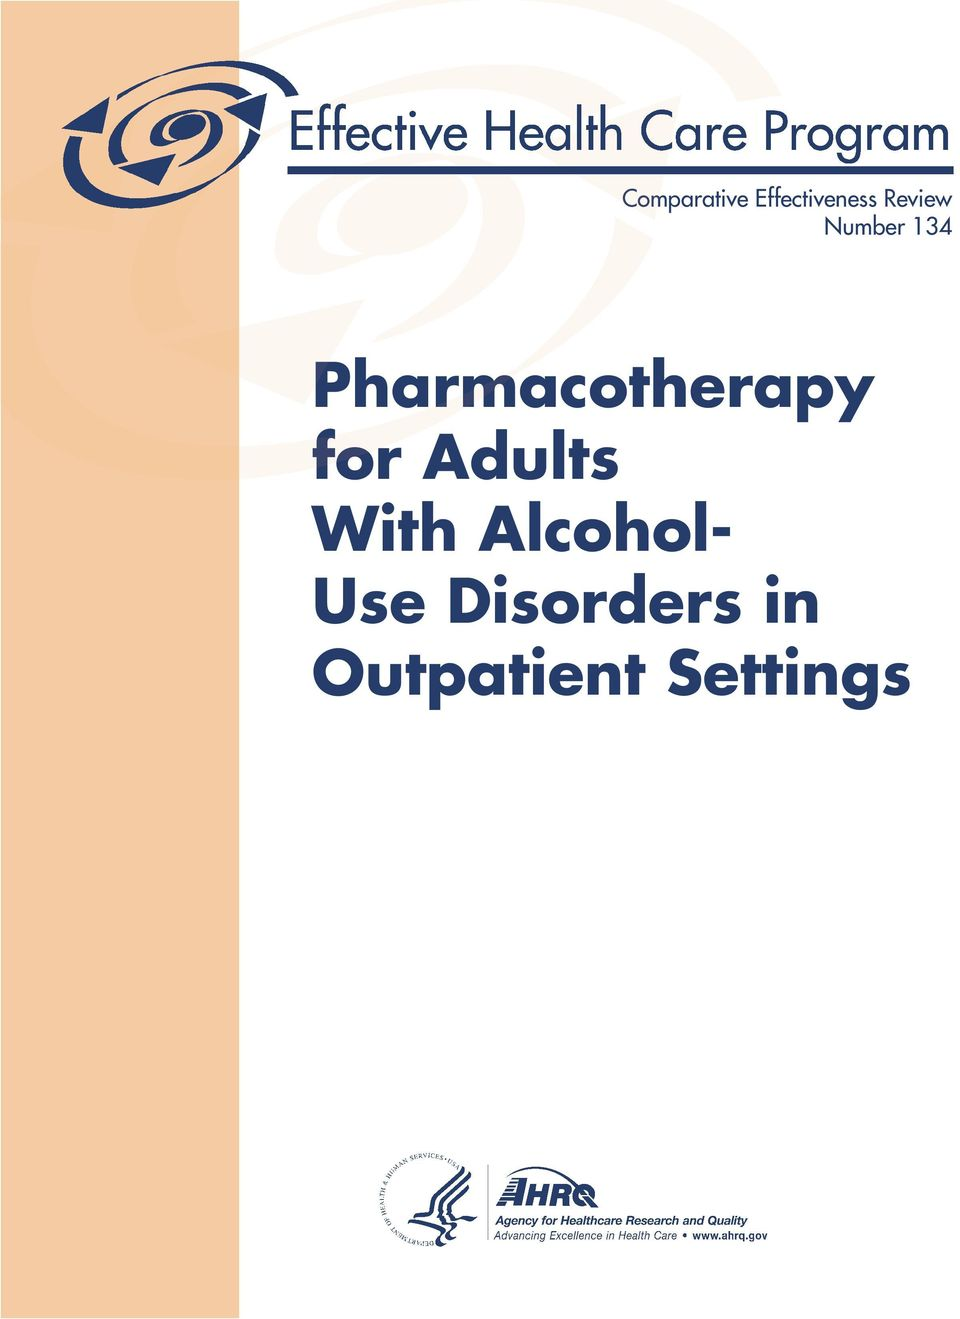 Pharmacotherapy for Adults